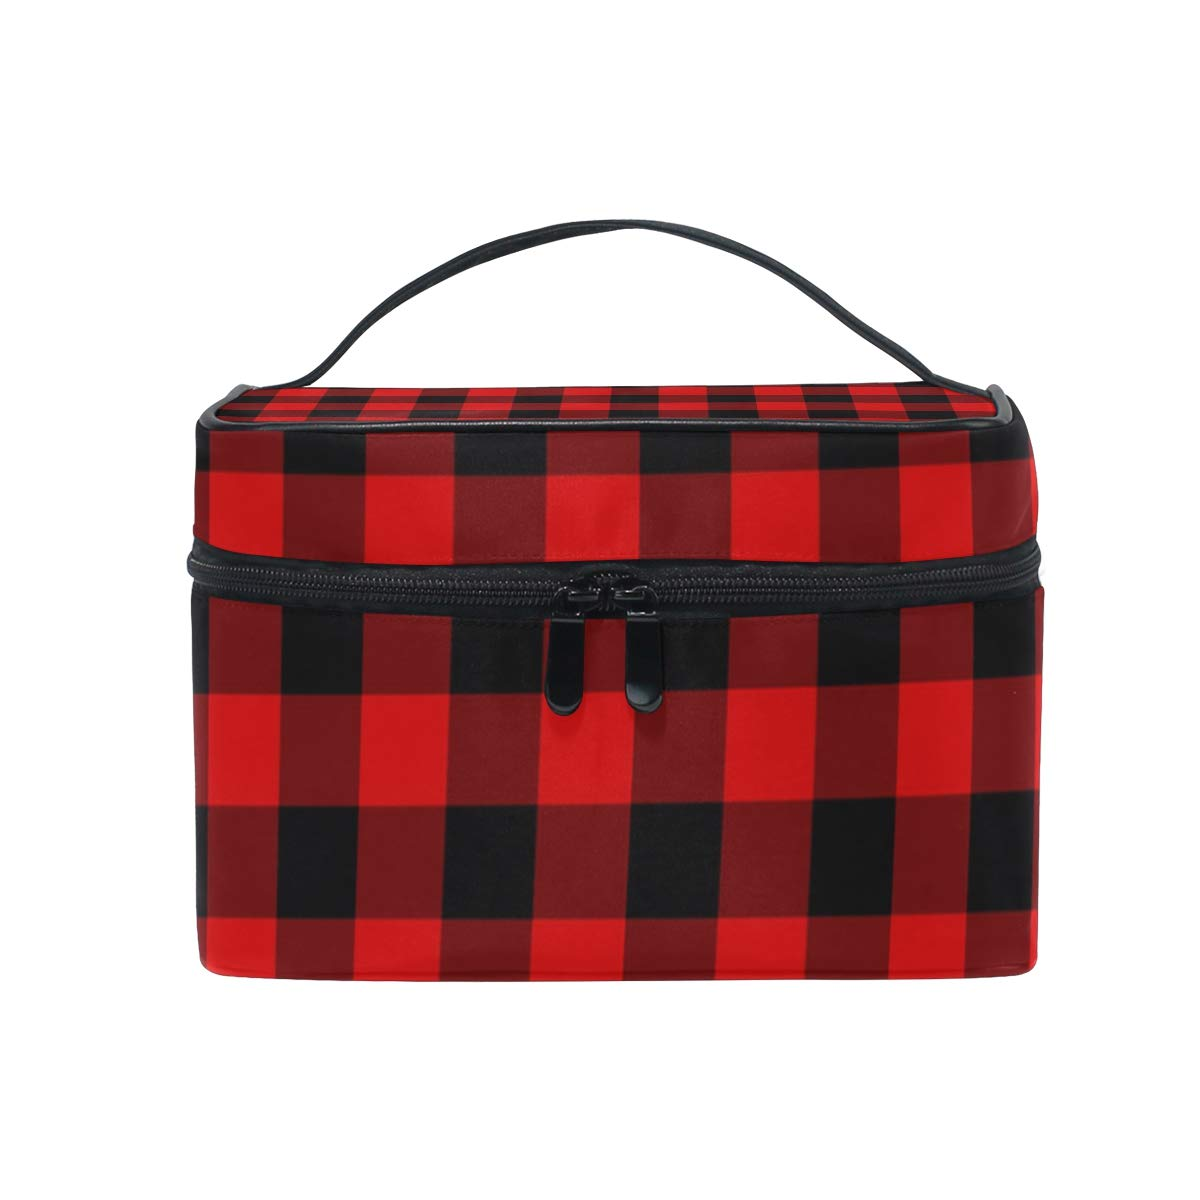 Makeup Cosmetic Bag Rustic Black Red Buffalo Check Plaid Pattern Portable Travel Train Case Toiletry Bags Organizer Multifunction Storage